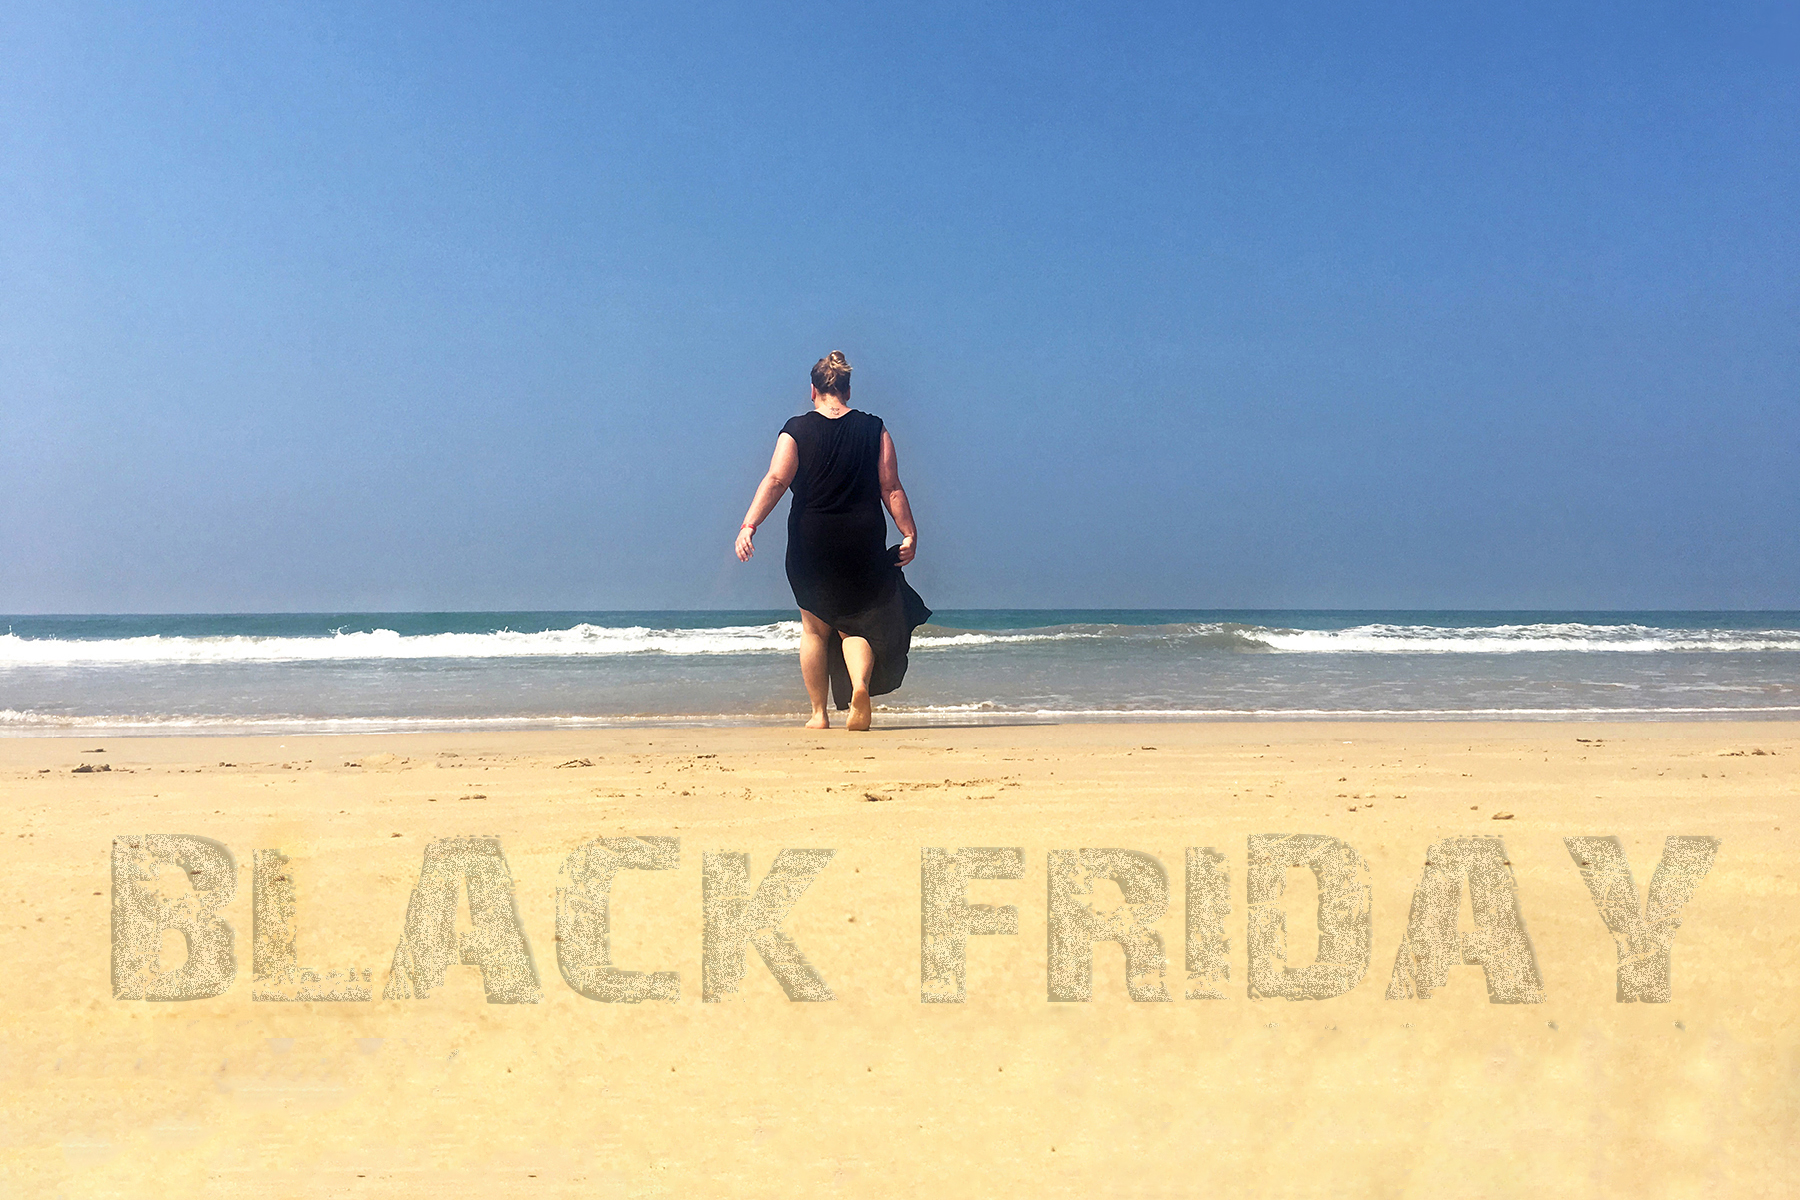 TGIF ♥ Thank God It's Black Friday: 11 Tipps für die besten Reisedeals am Black Friday